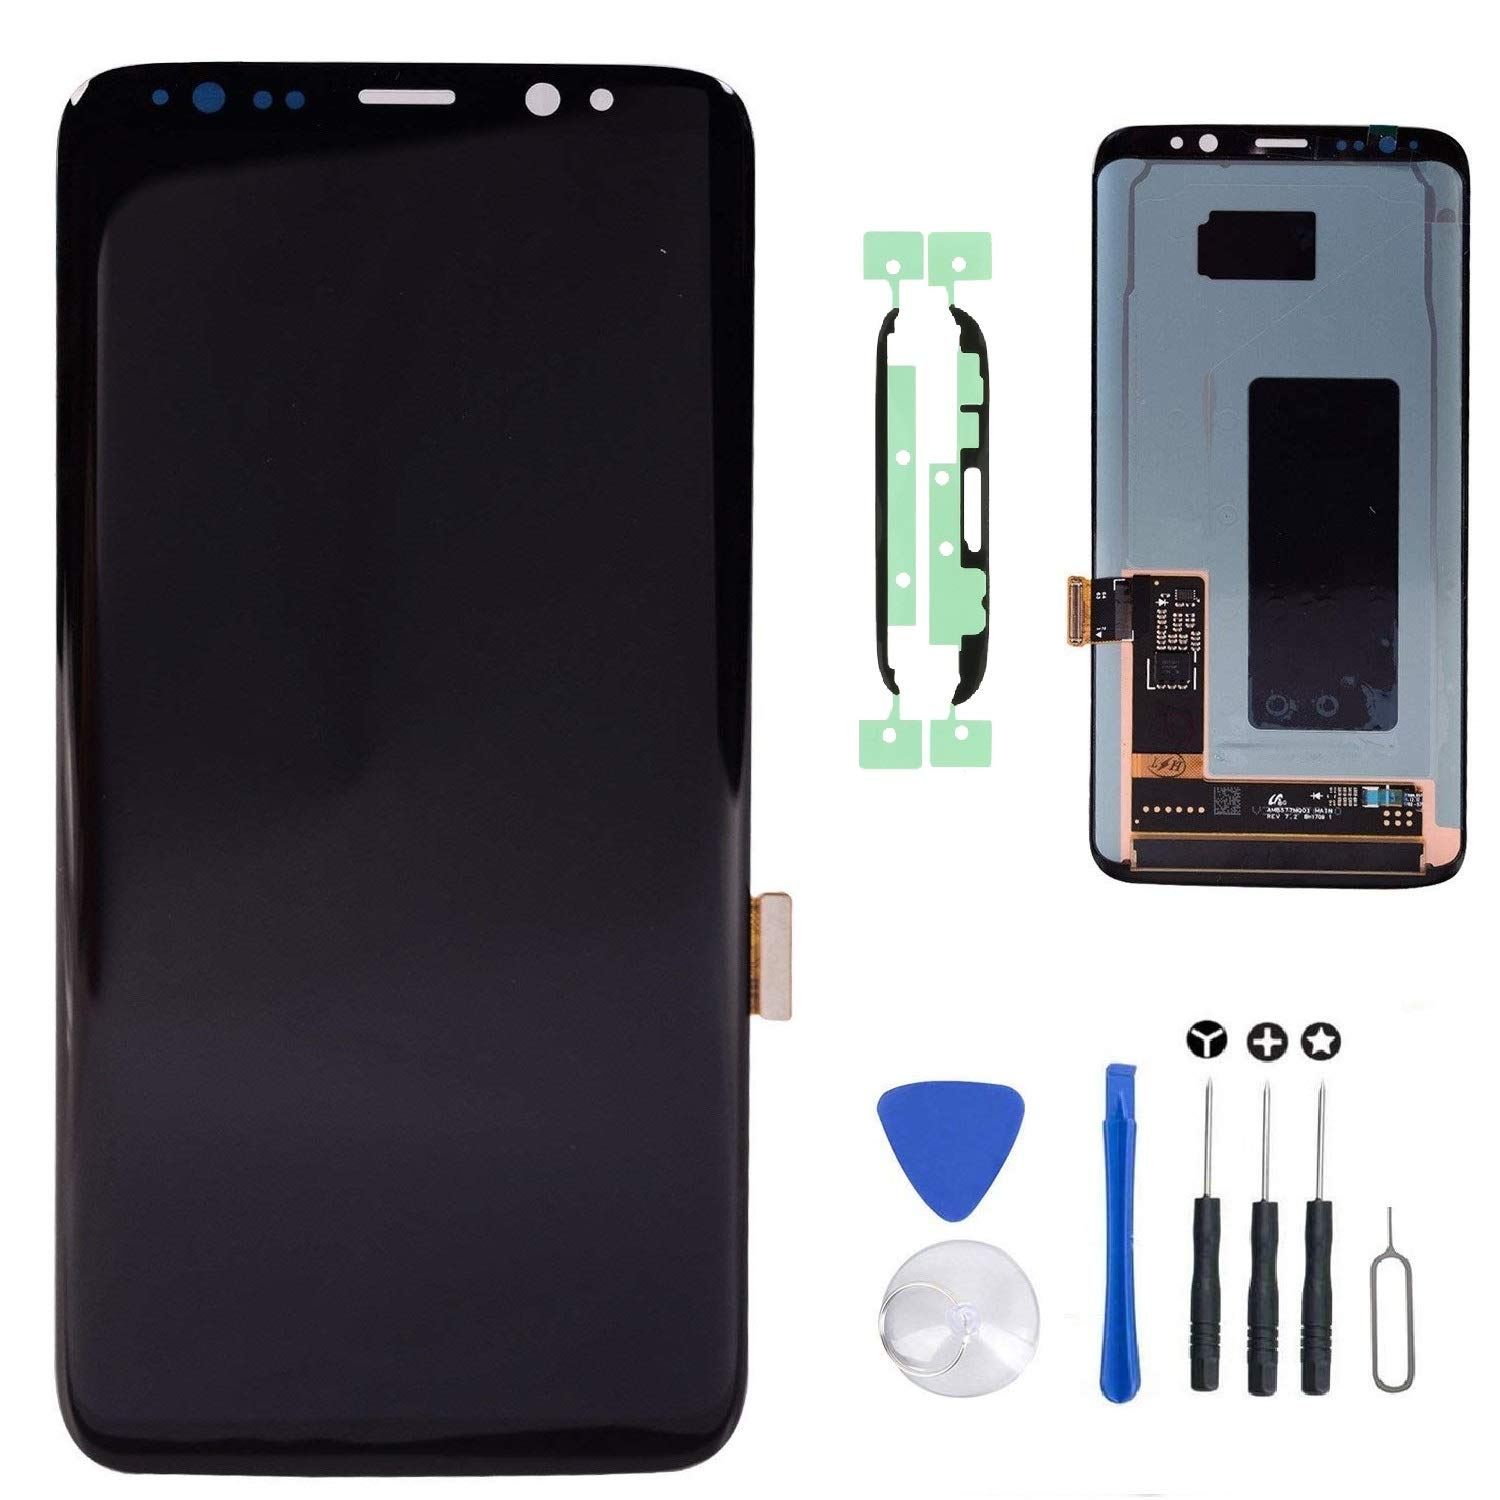 "LCD Display Touch Screen Digitizer Assembly Replacement with Tools for Samsung Galaxy S8 5.8"" G950F G950A G950P G950V G950T G950R4"